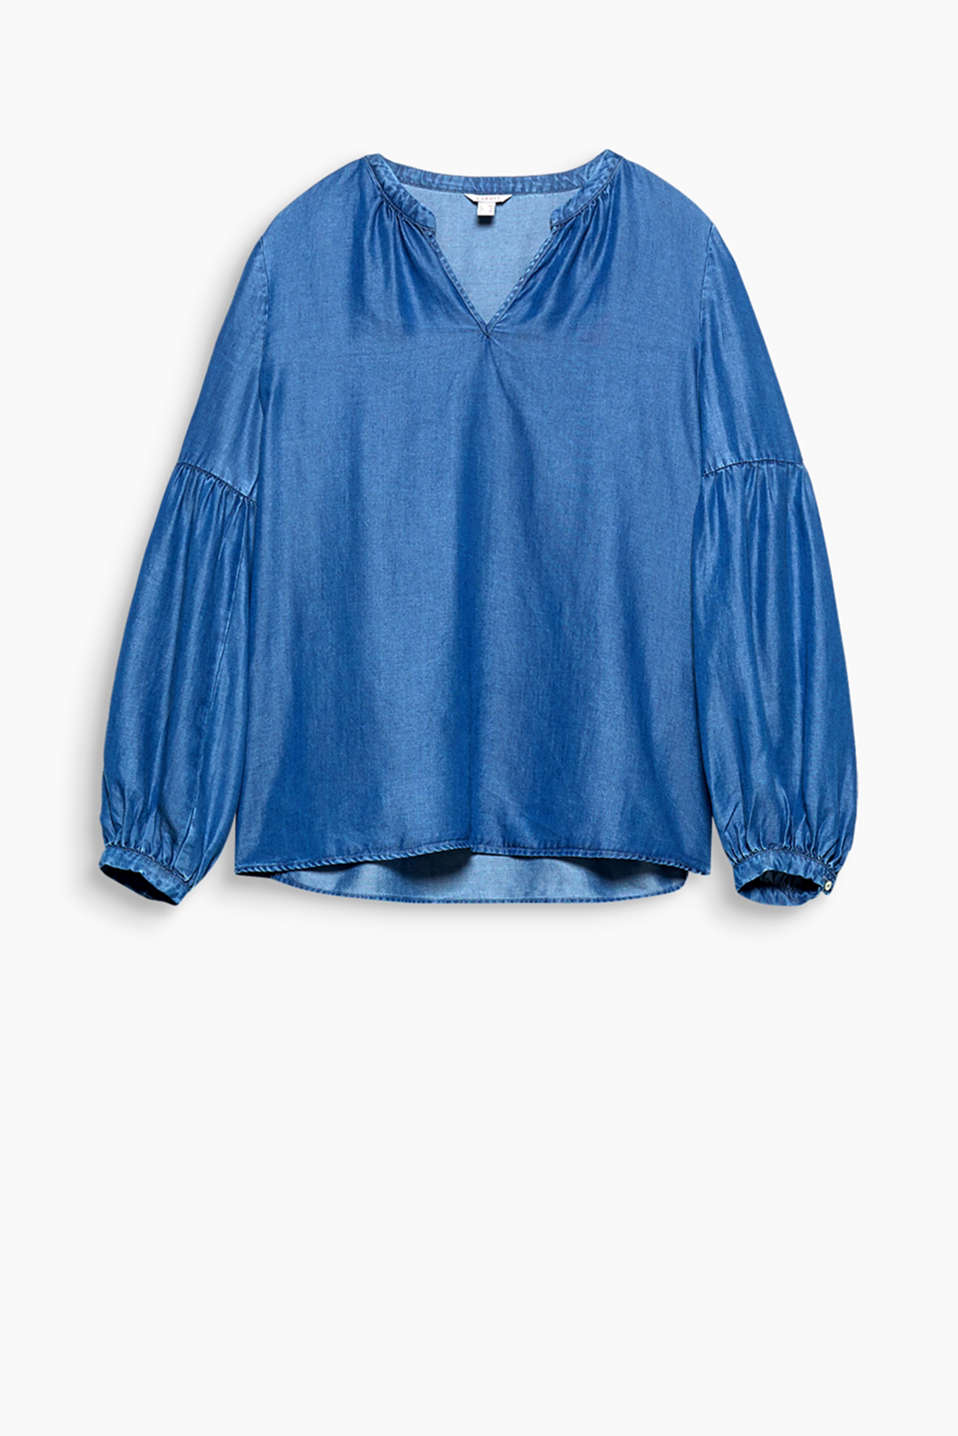 This flowing lyocell blouse is a feminine denim piece that will enchant you with its fashionable balloon sleeves!